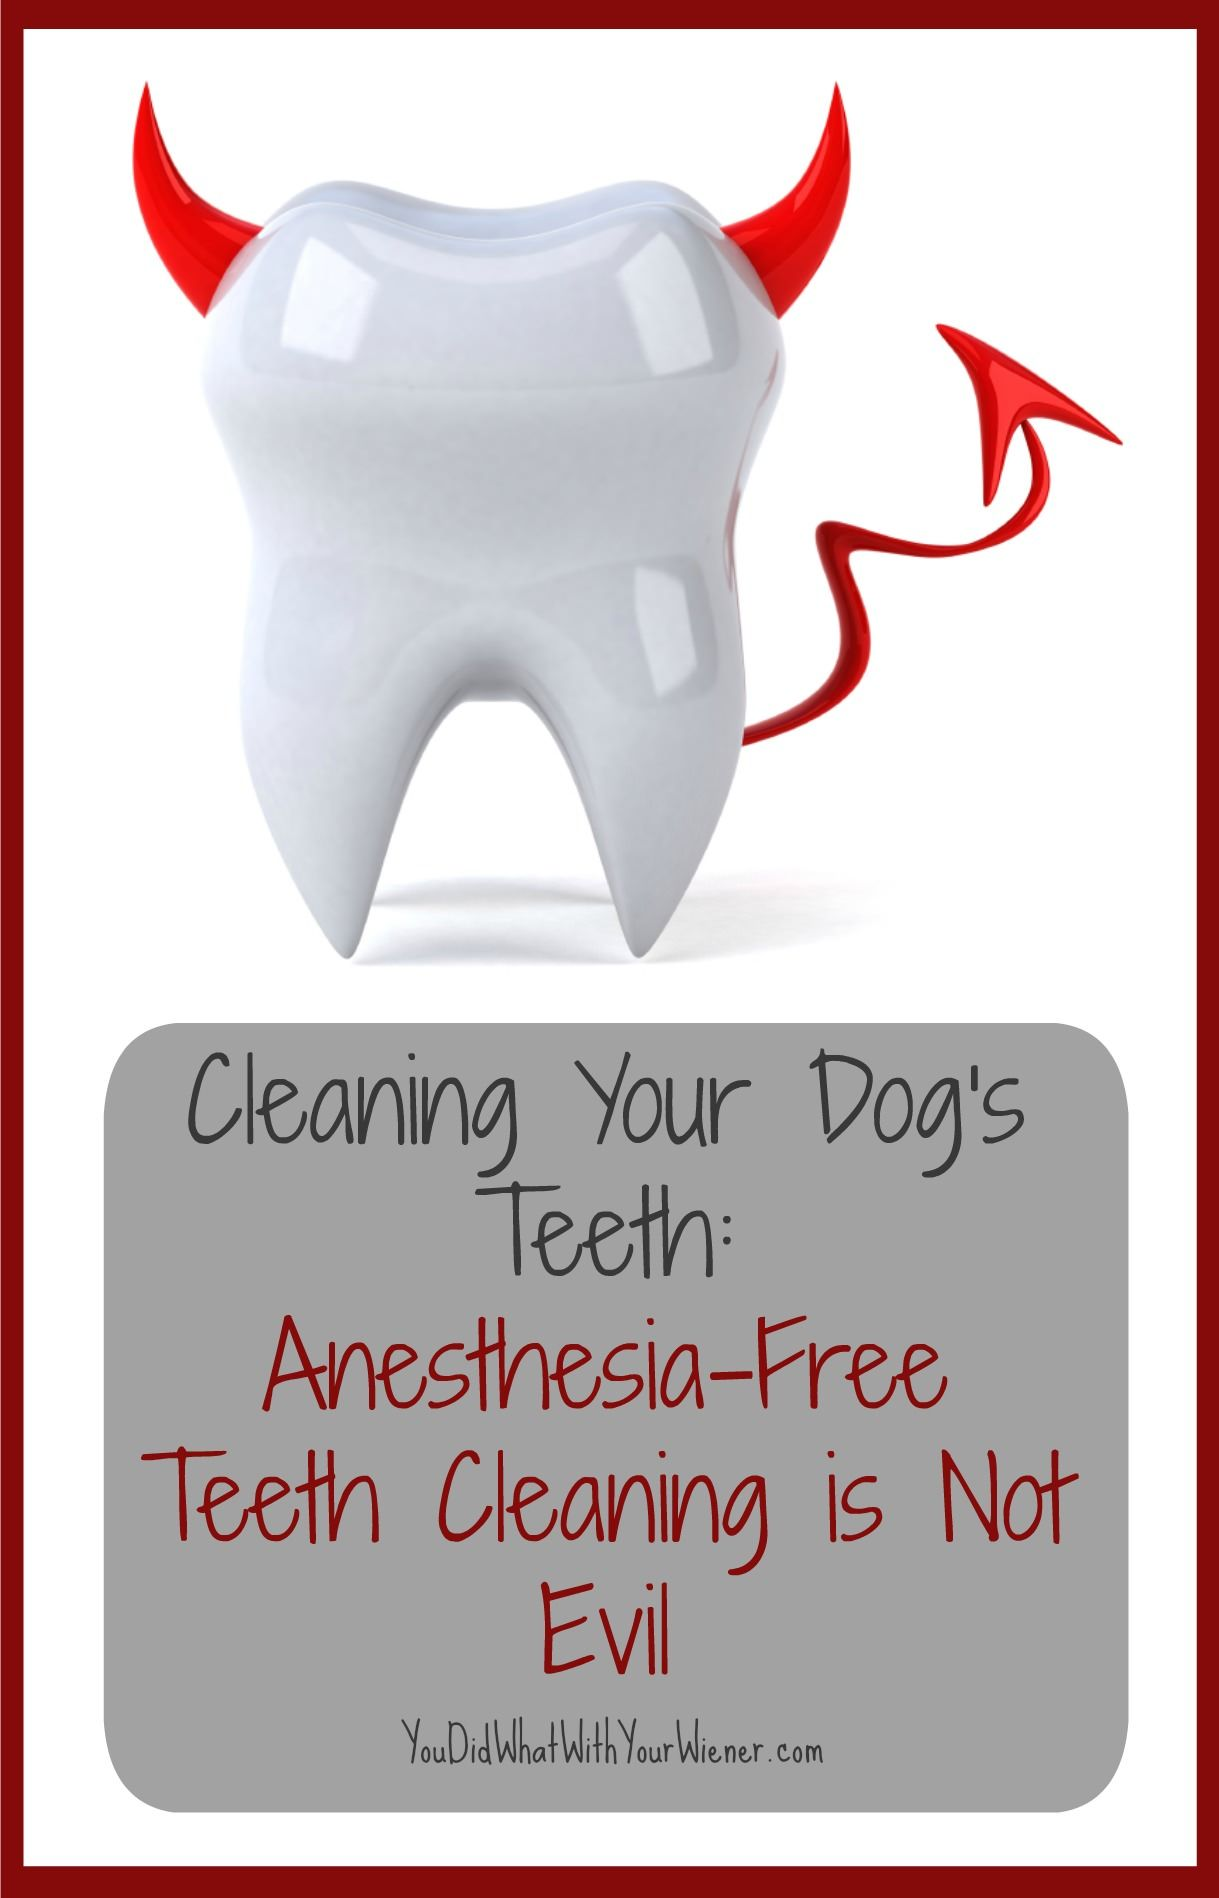 5 Tips for Brushing Your Dogs Teeth! Also if your dog